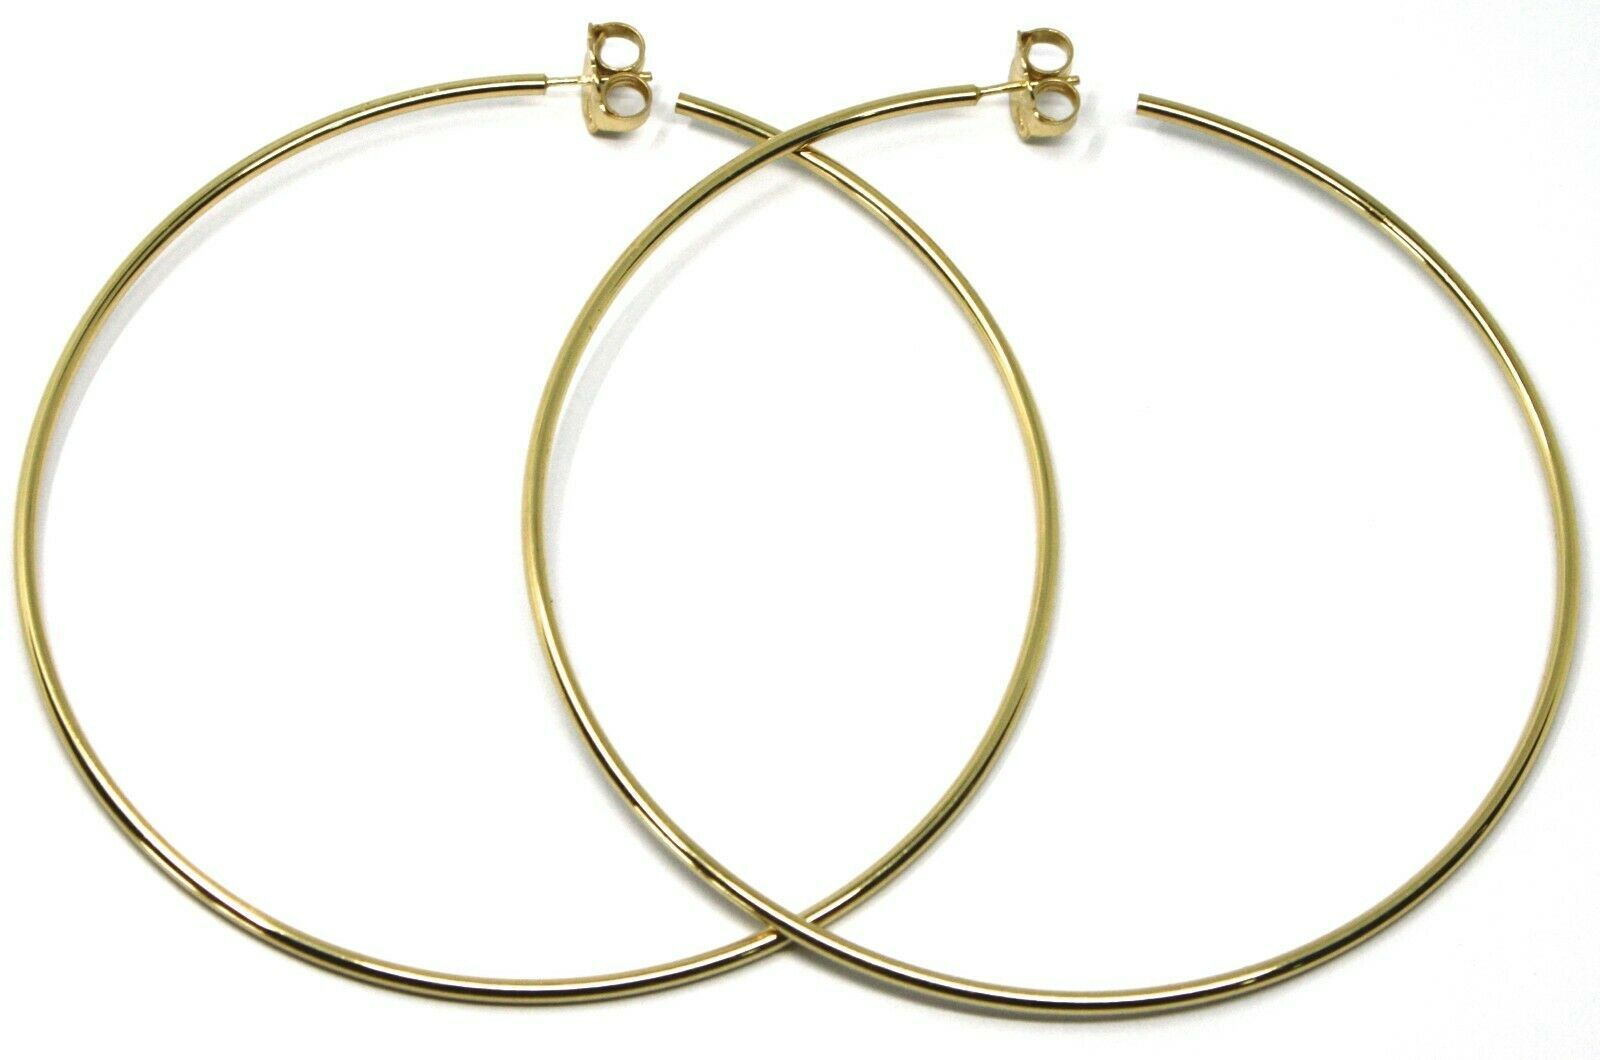 925 STERLING SILVER CIRCLE HOOPS BIG EARRINGS, 9.5cm x 2mm YELLOW SMOOTH